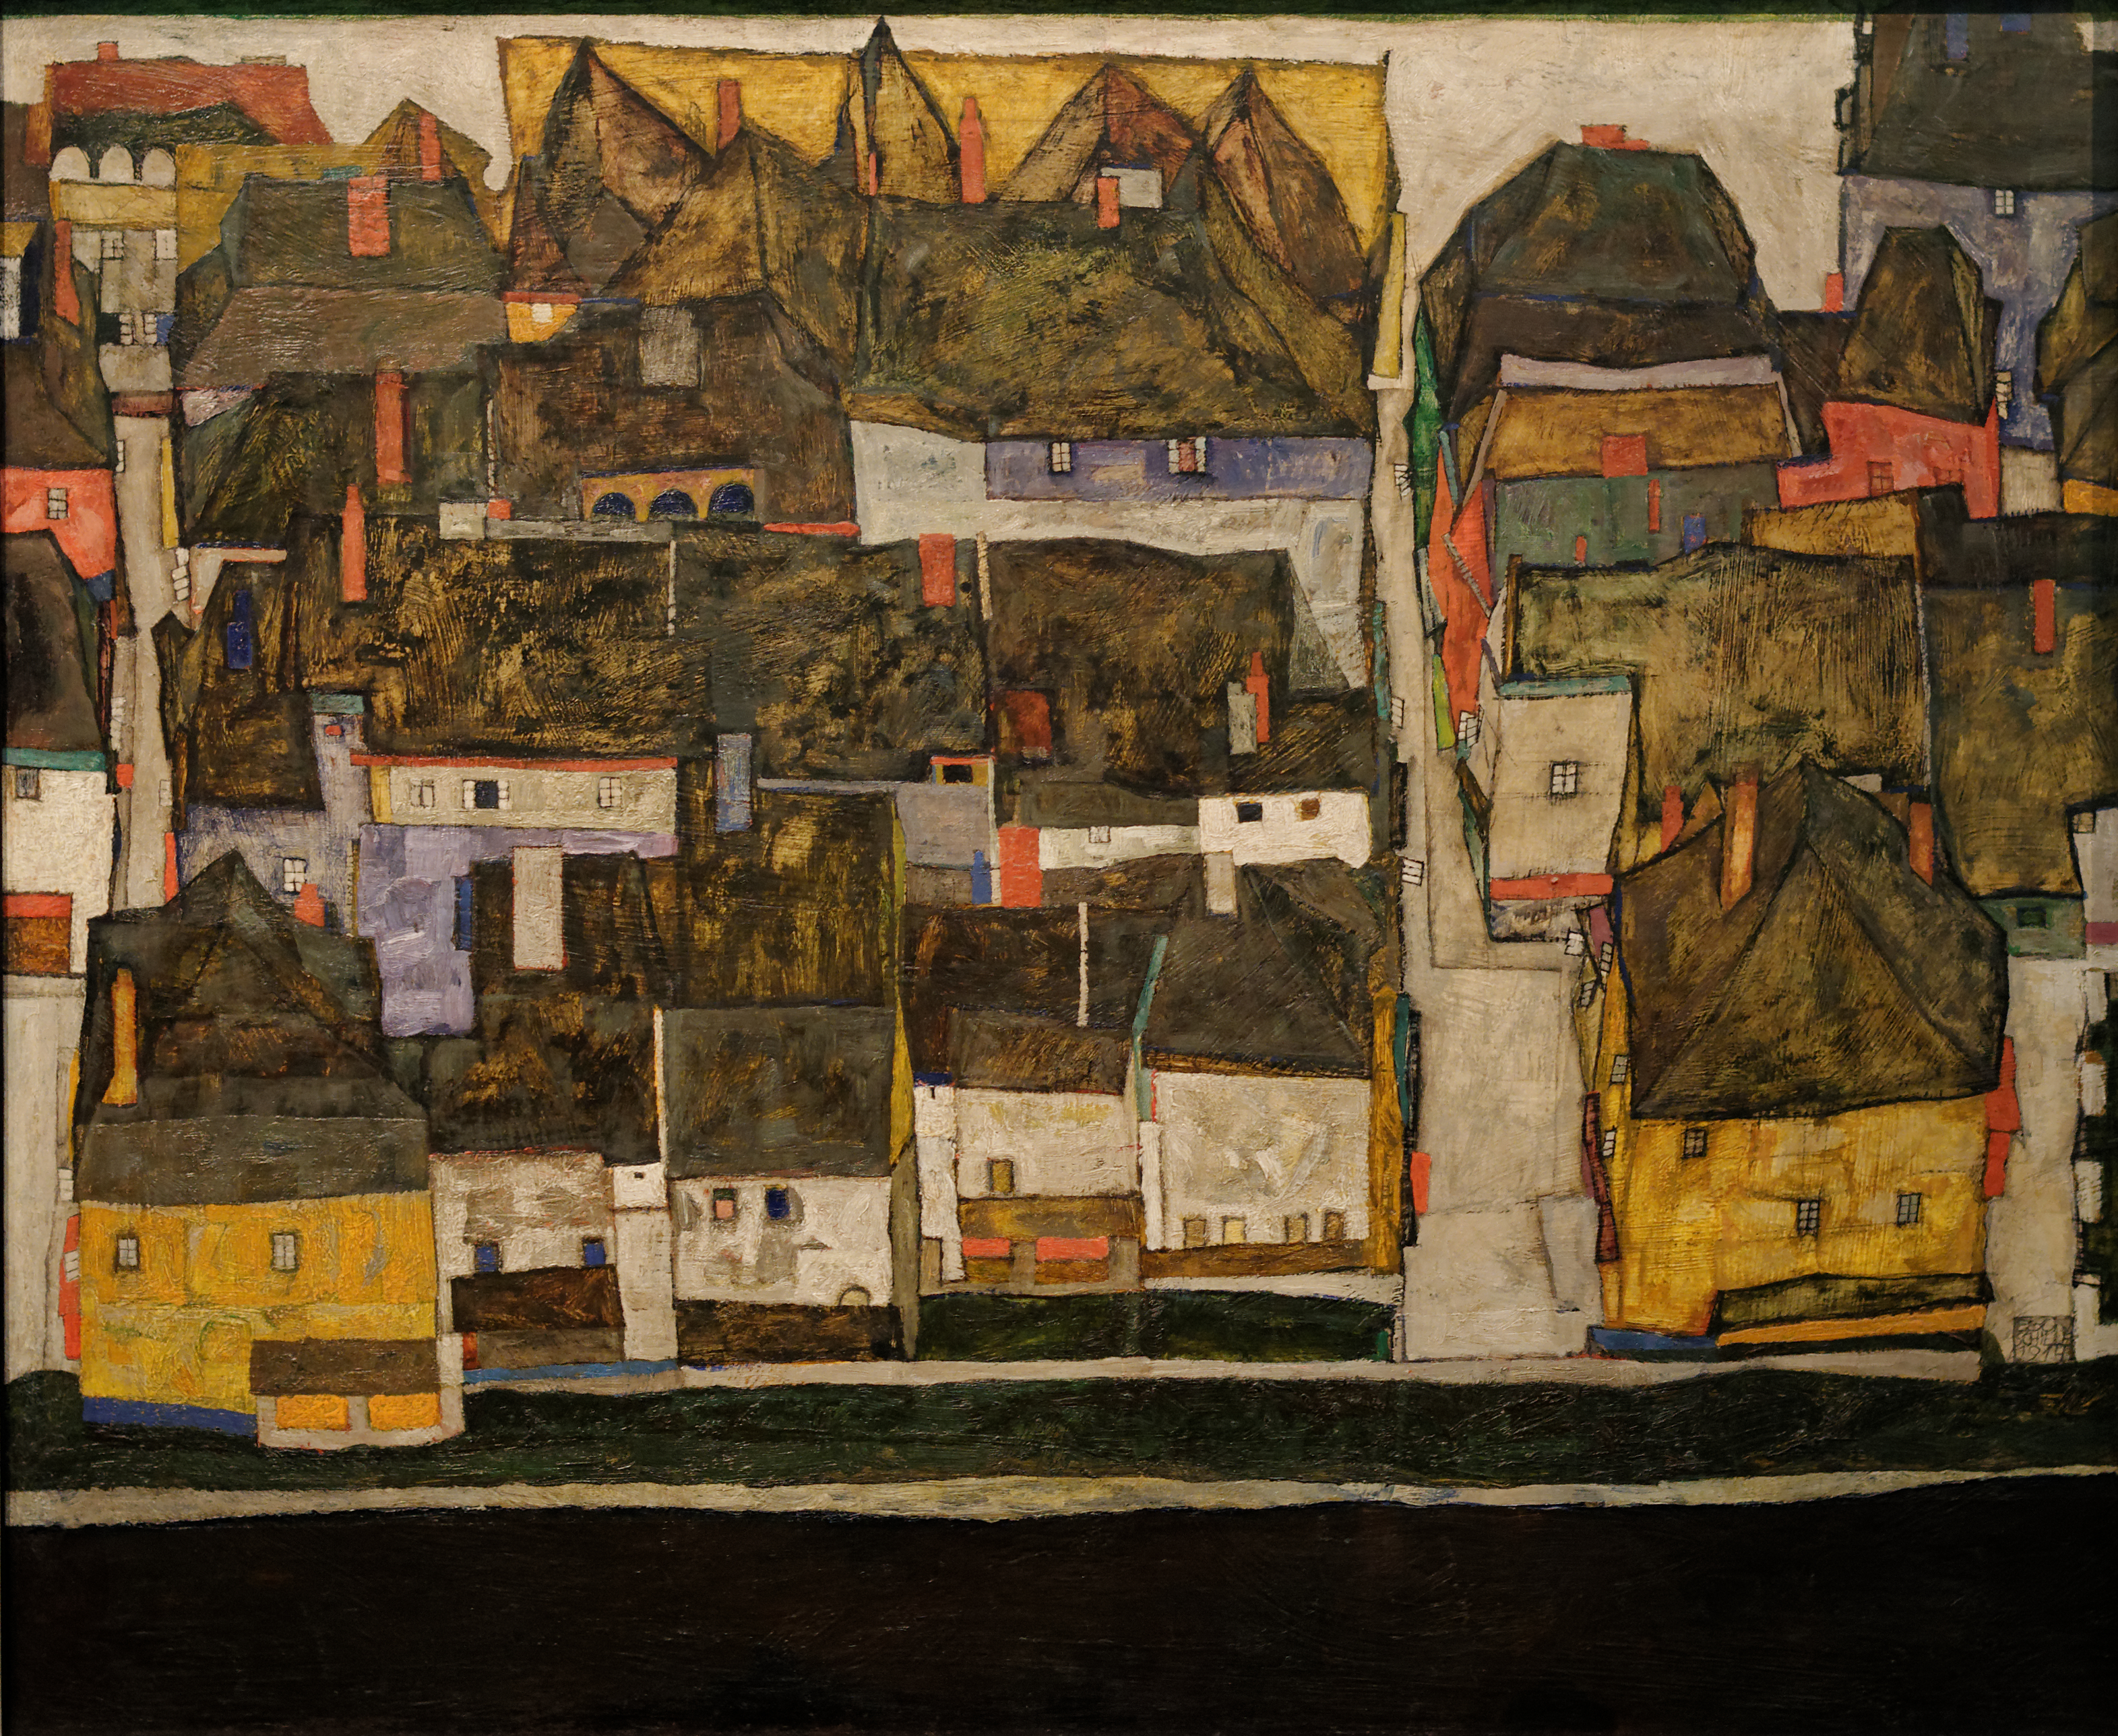 Egon Schiele   Crescent of Houses II Island Town   Google Art Project Single Post Template 21 Duzy tytuł